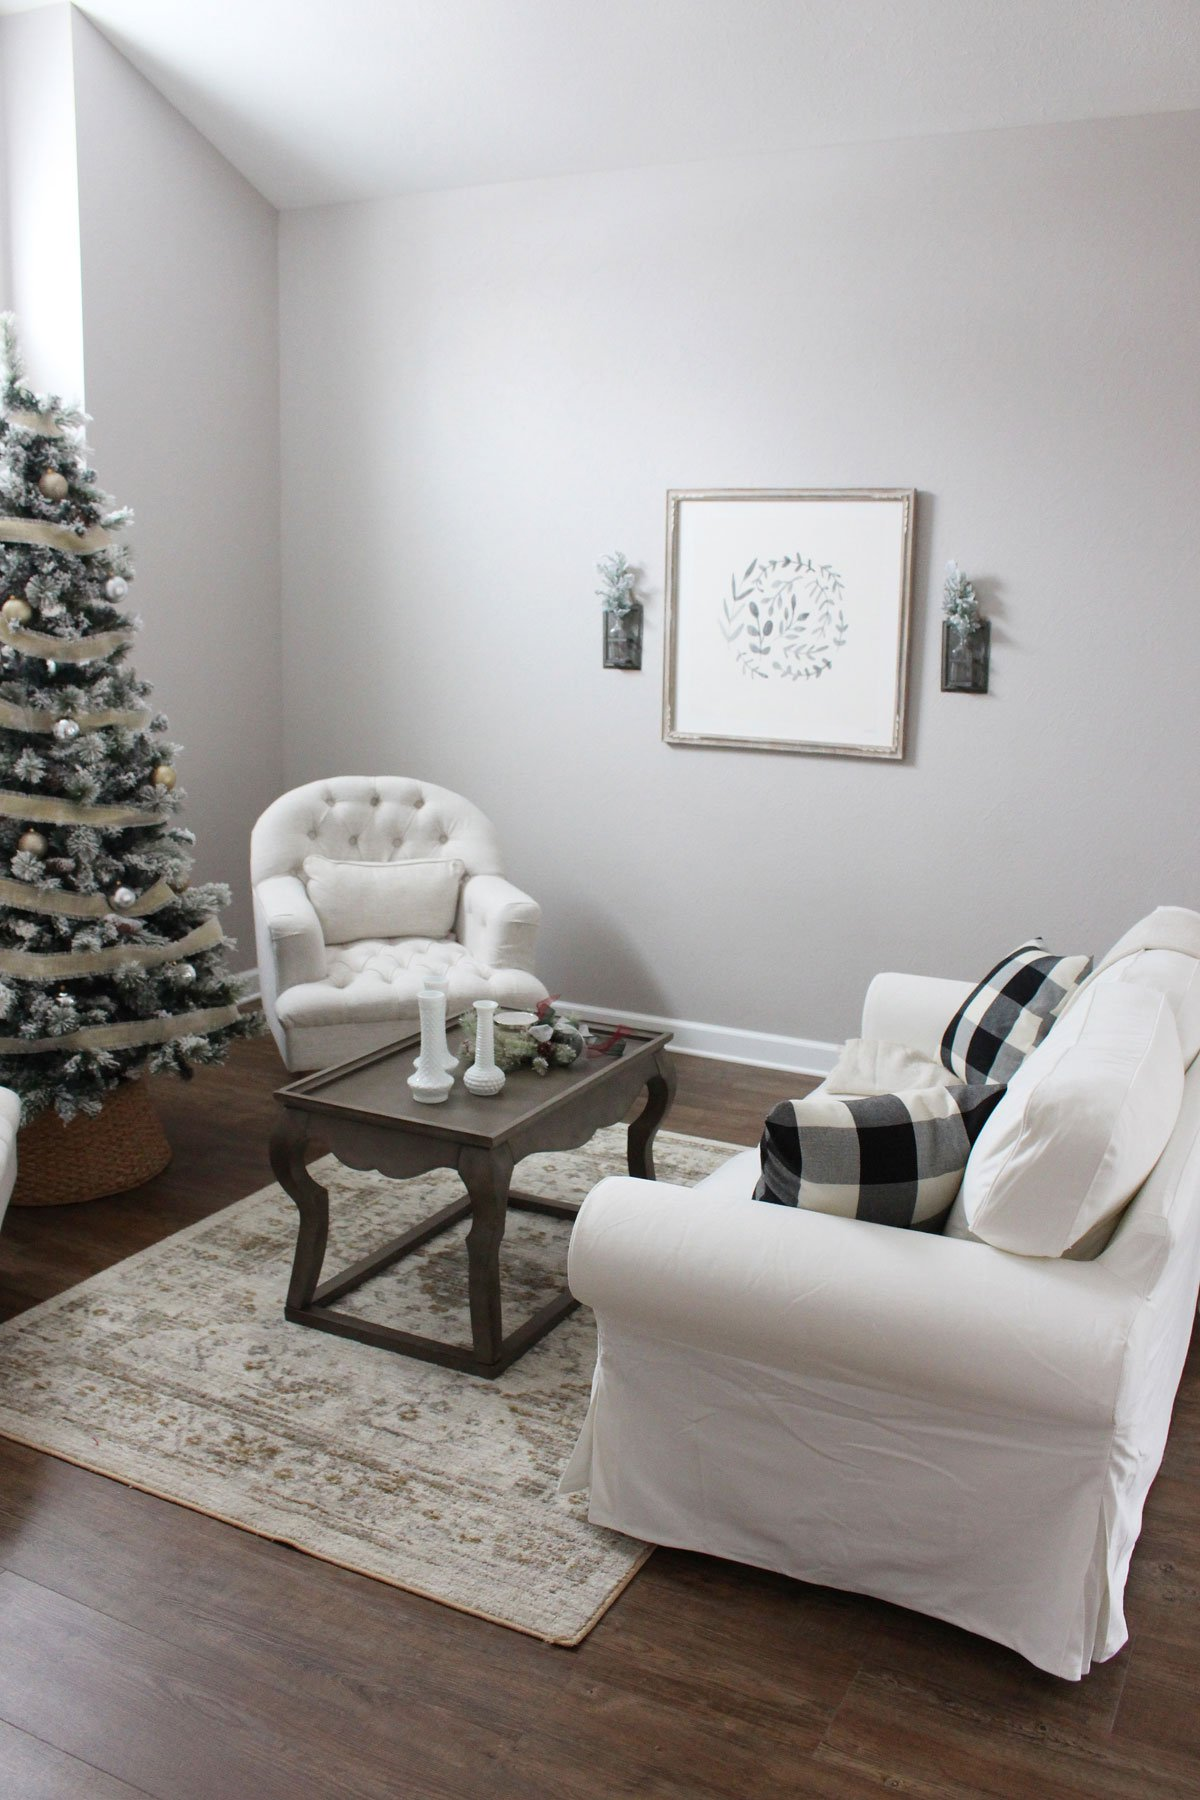 Modern Farmhouse Informal Sitting Room at Christmas